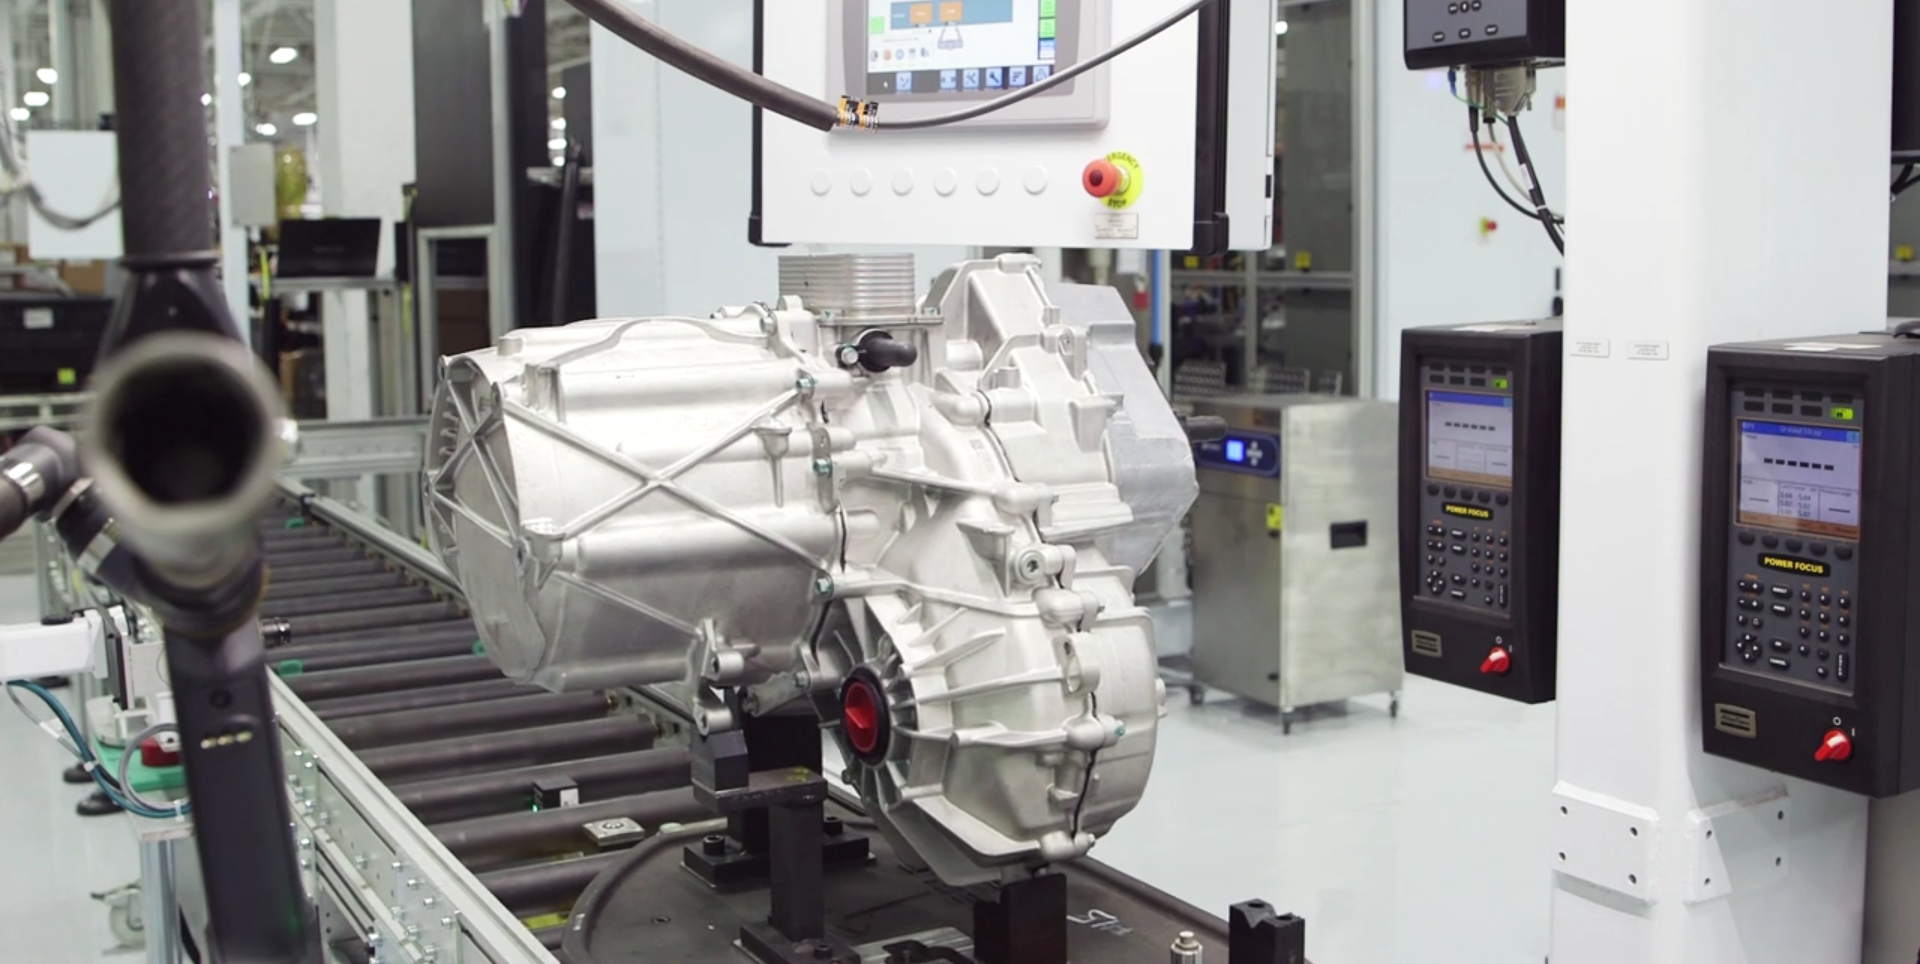 Tesla upgrades its electric motor on the road to have